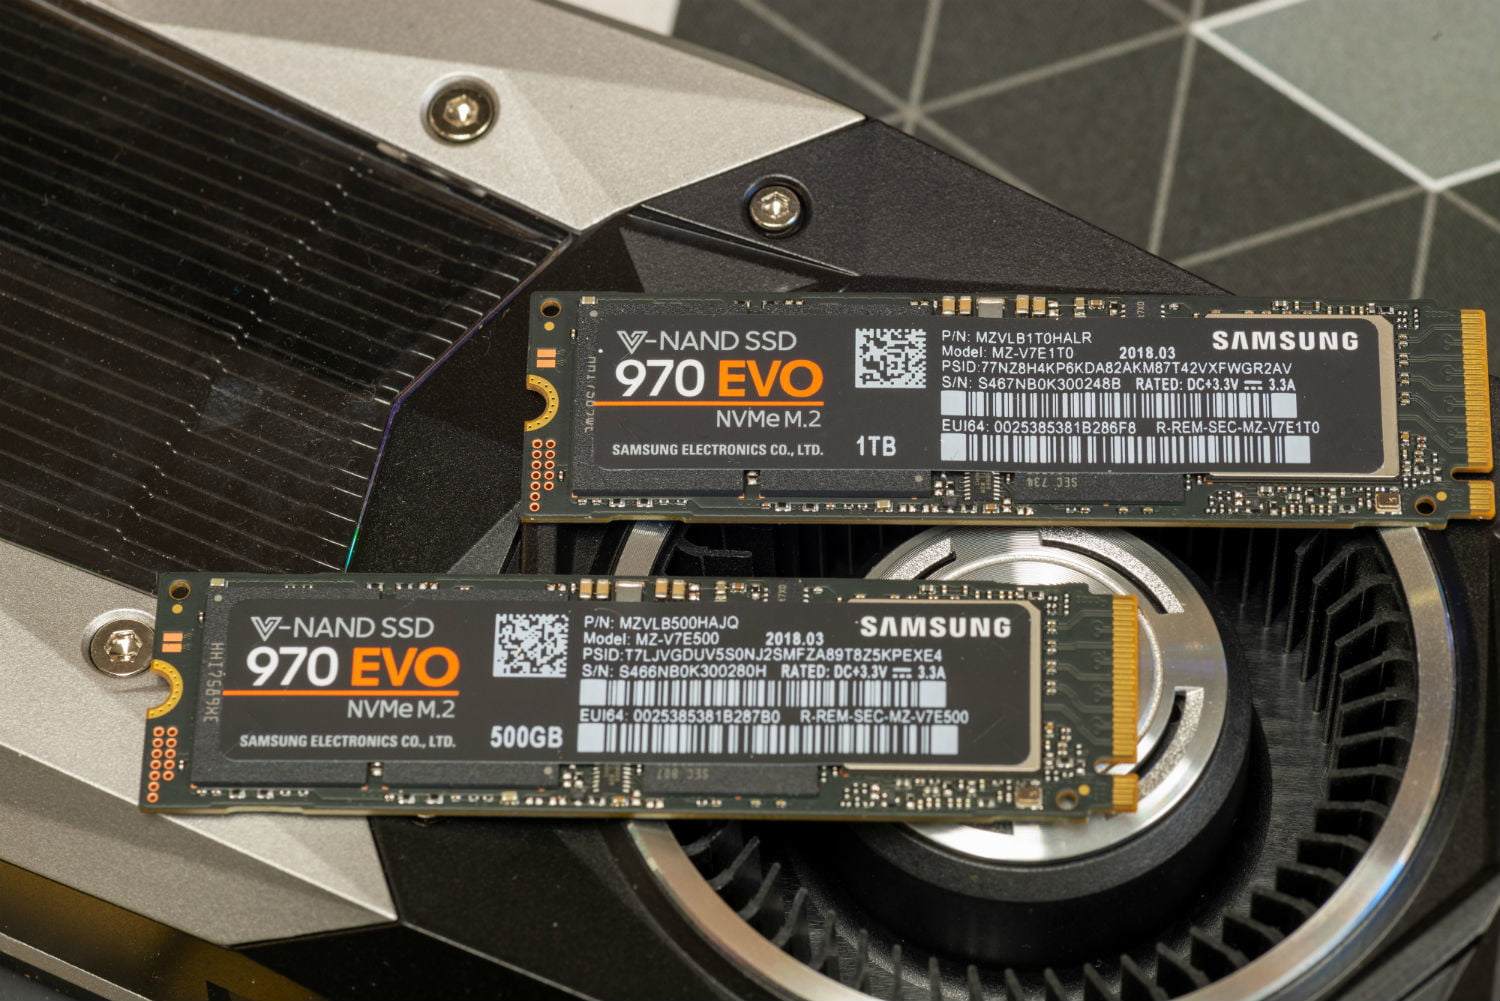 Samsung S 970 Evo Ssds Offer Stellar Performance With A Price To